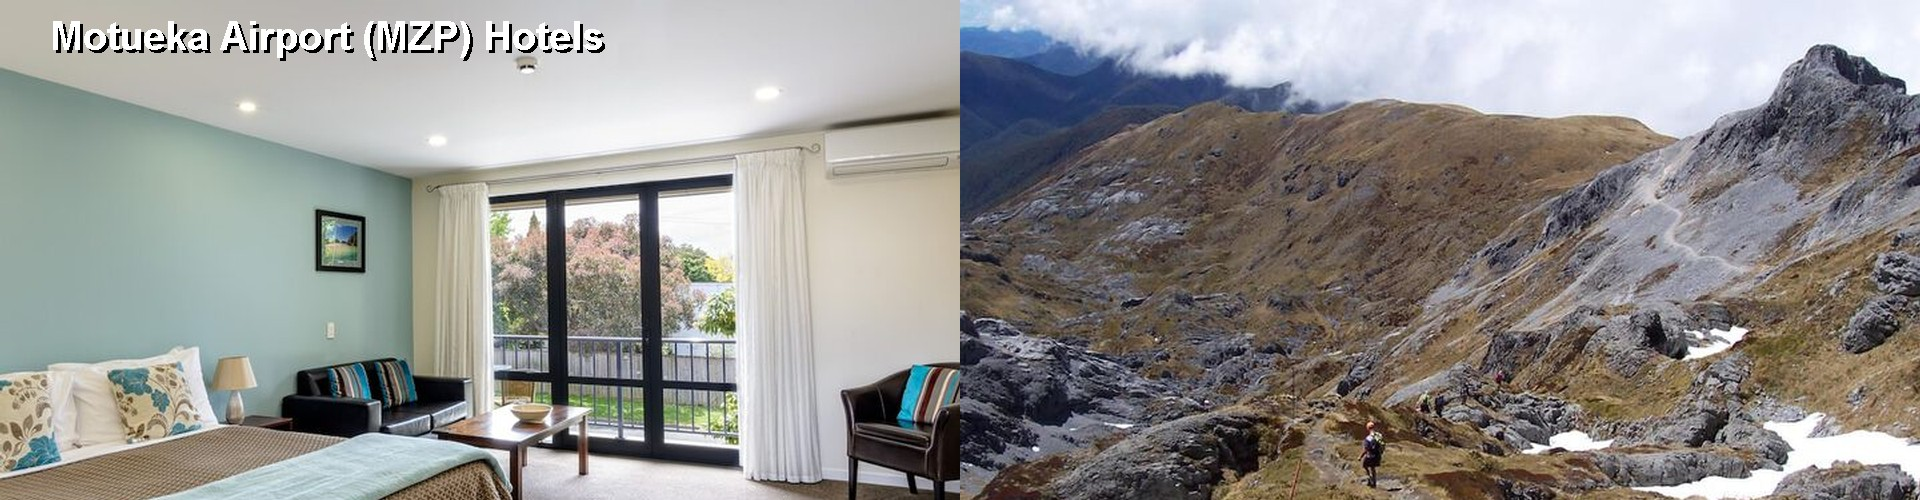 5 Best Hotels near Motueka Airport (MZP)